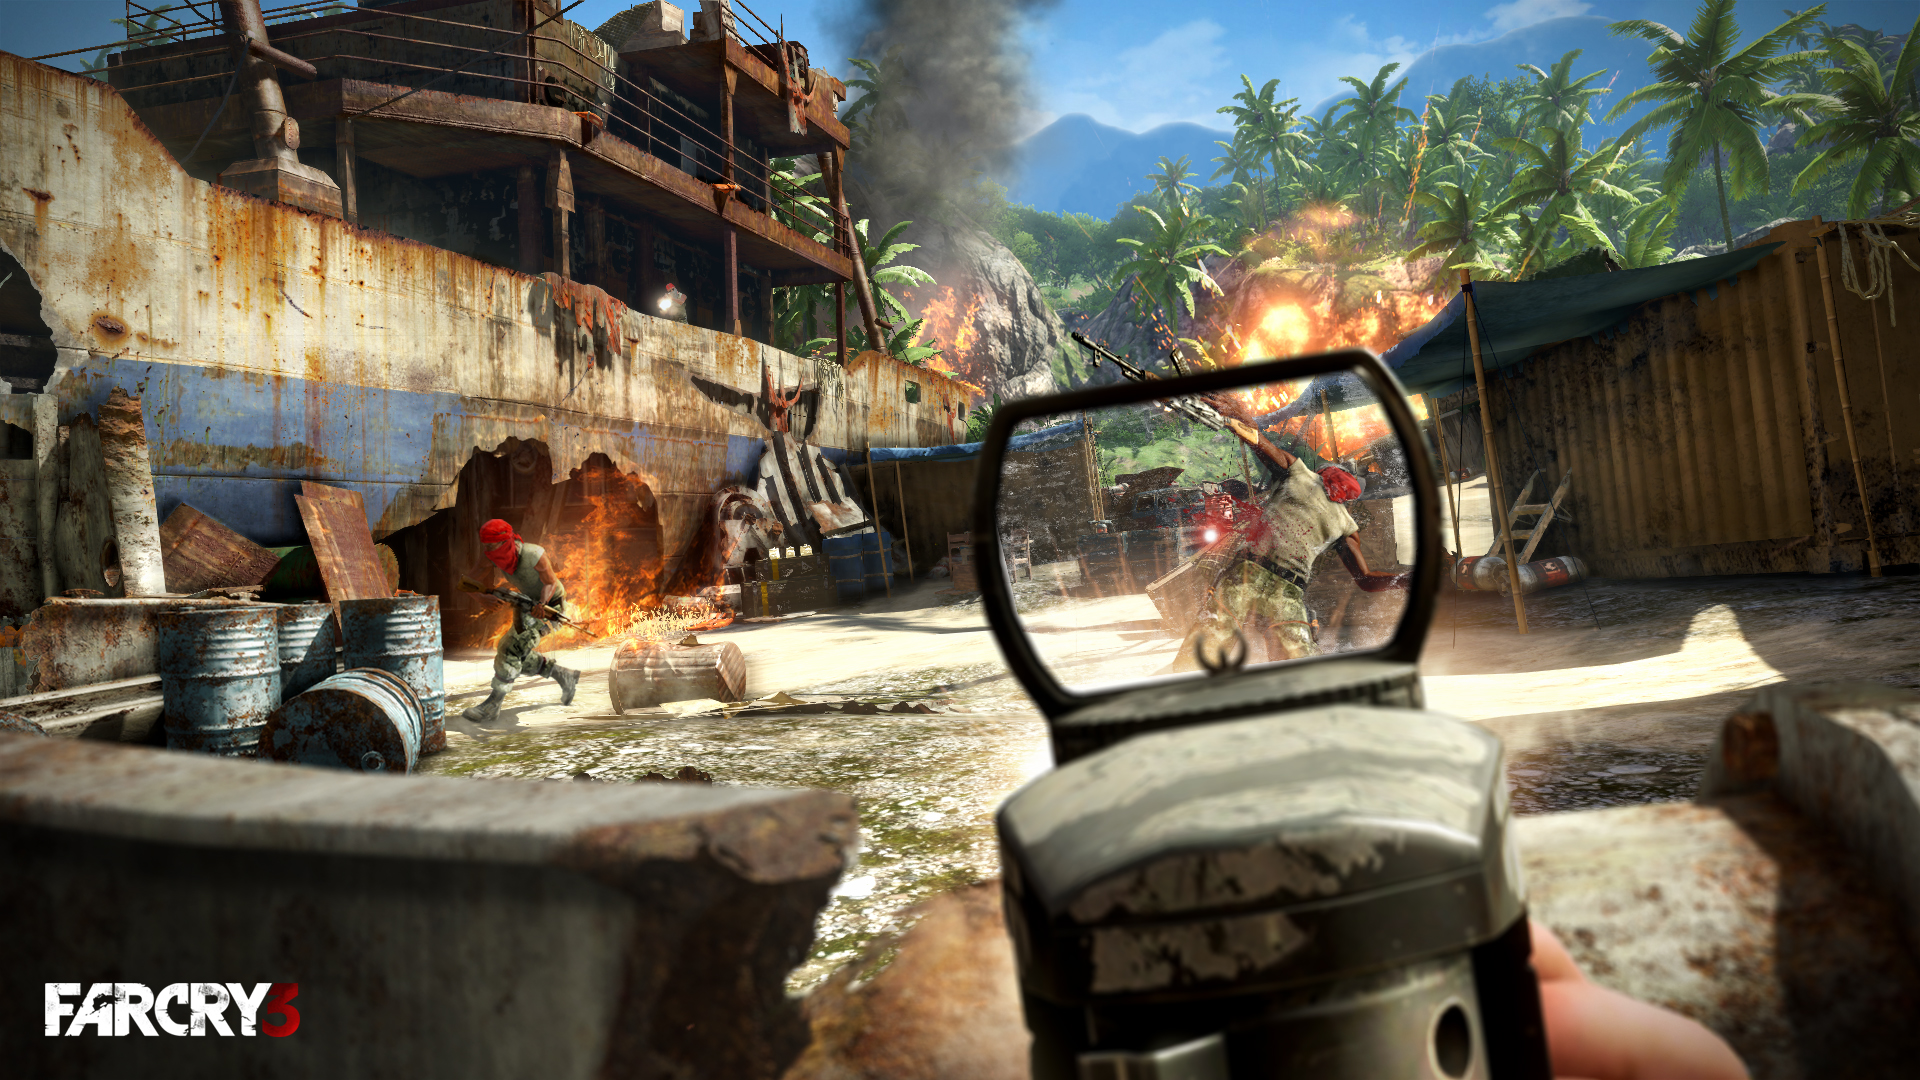 Hd Wallpapers Far Cry 3 I Have A Pc I Have A Pc